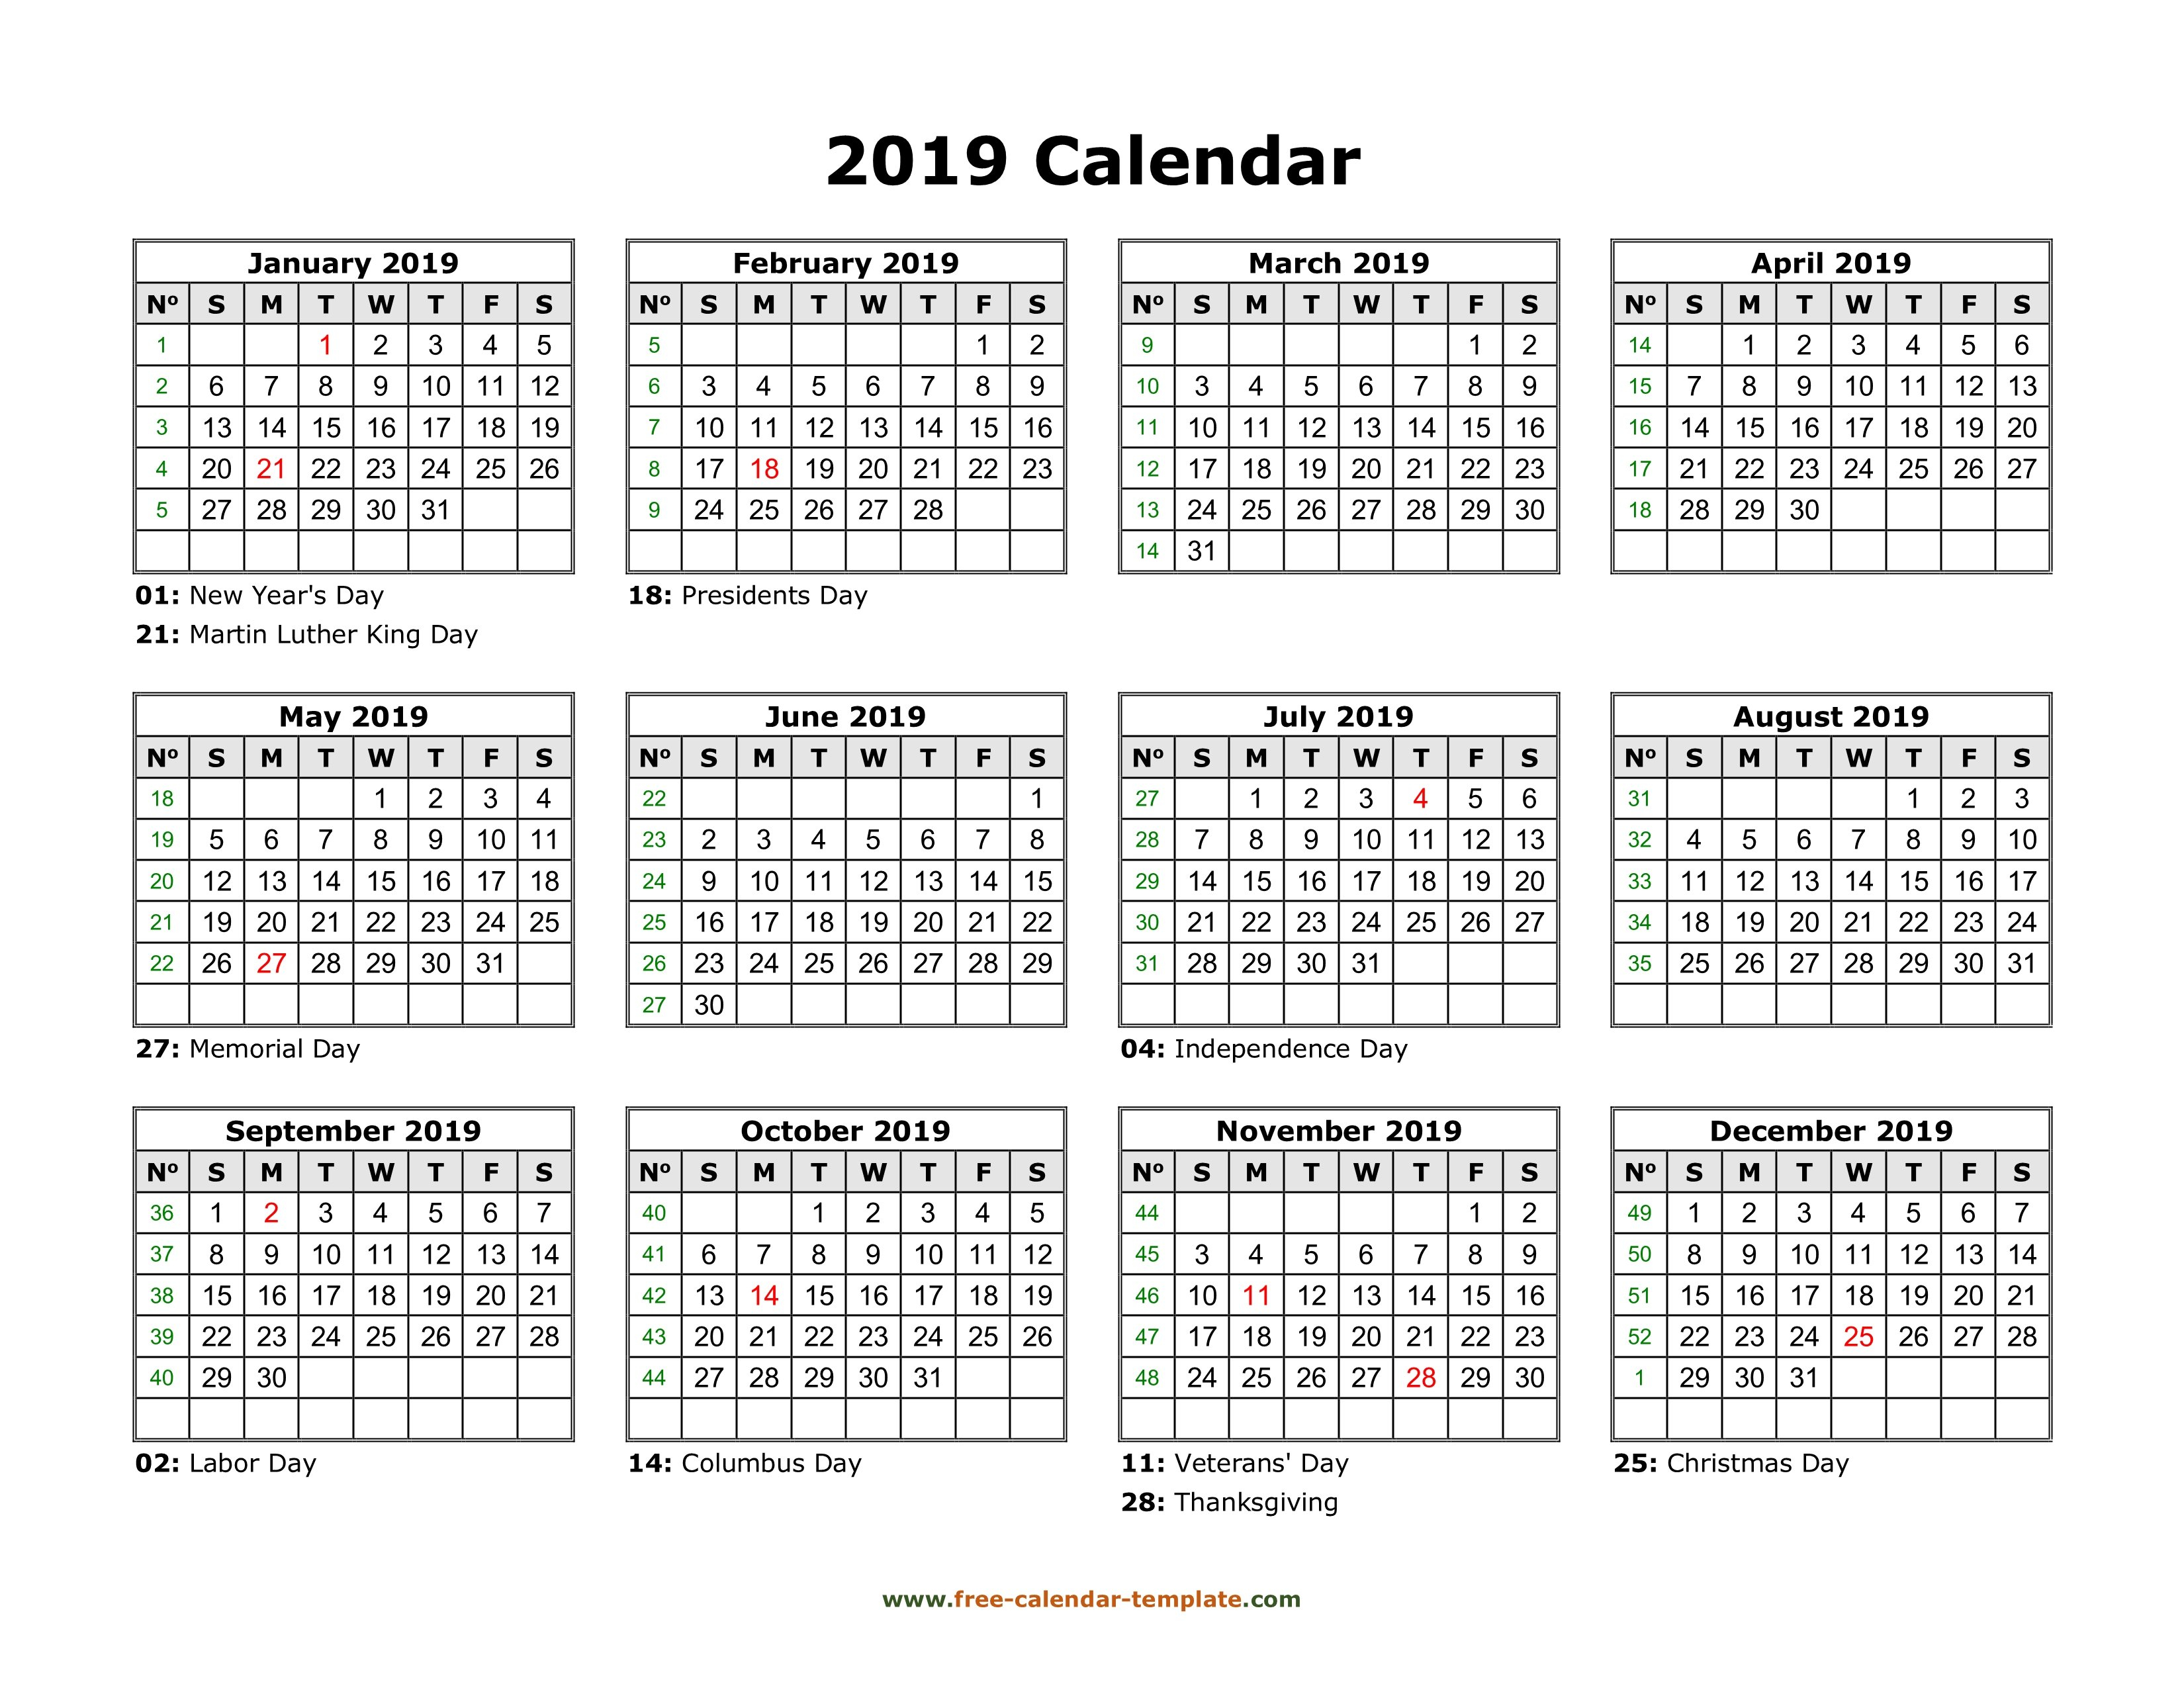 Yearly Calendar 2019 Printable With Federal Holidays | Free Calendar Calendar 2019 Year View